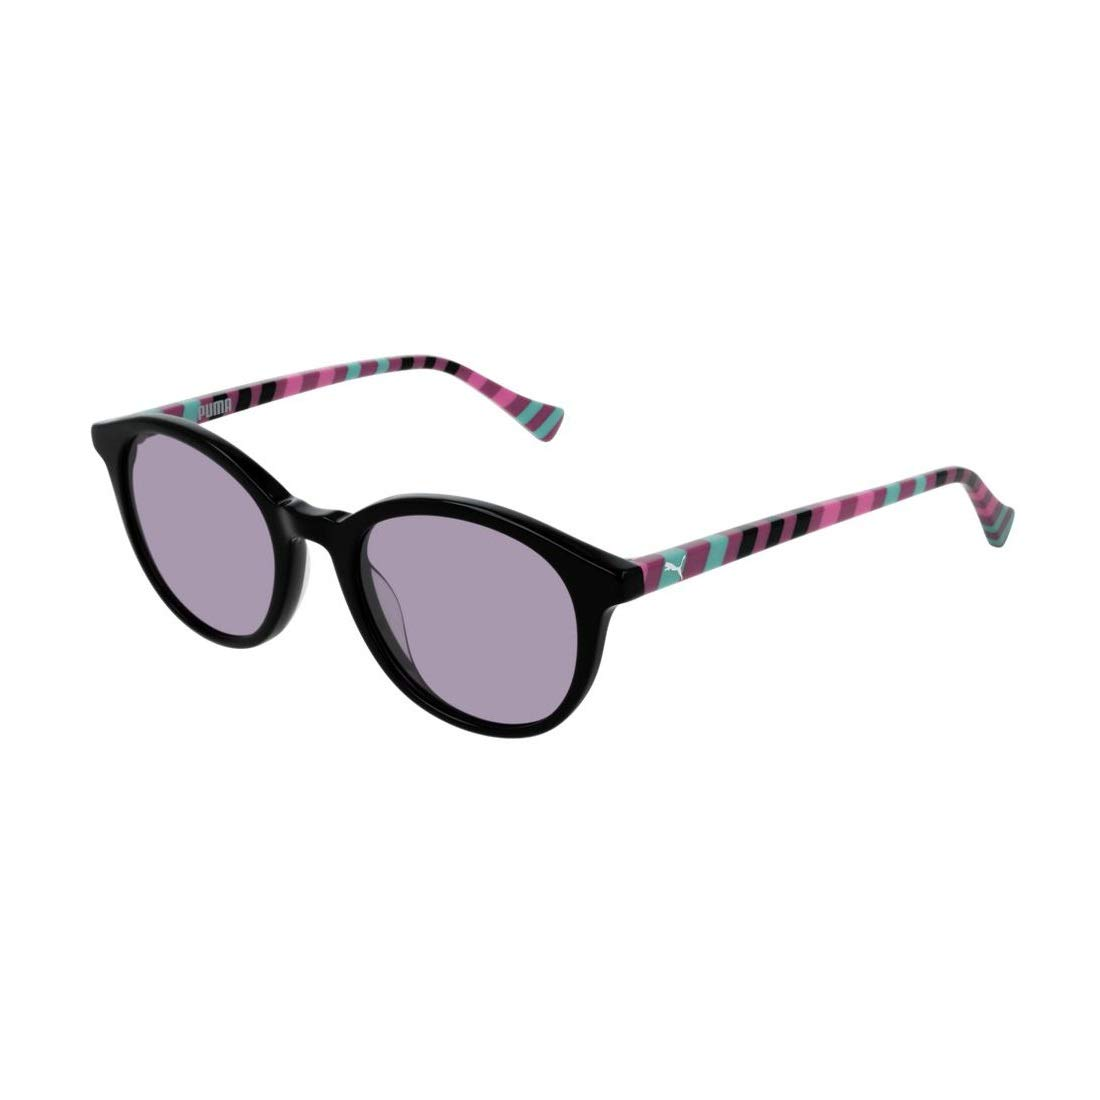 Puma Junior Gafas de sol, Black/Violet/Multicolor, 47.0 para ...